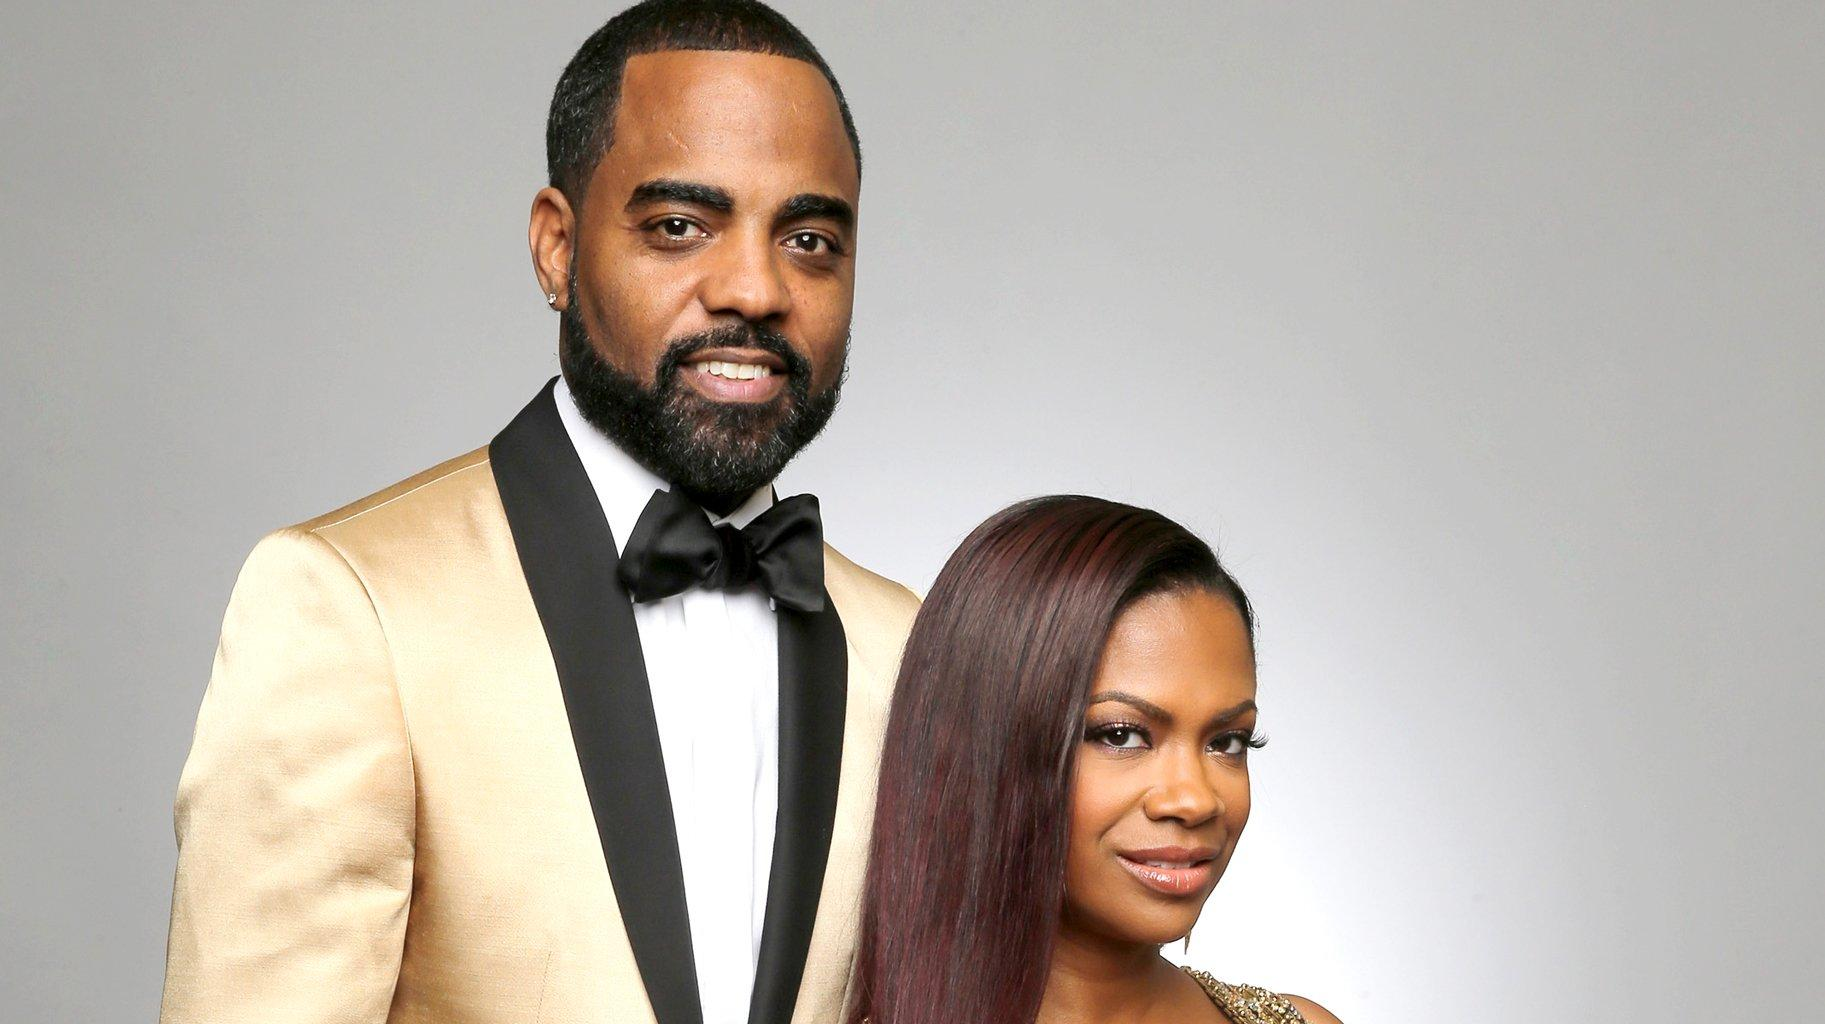 Kandi Burruss Updates Fans On Where She And Todd Tucker Stand Today After Marital Problems In Season 12 Of RHOA!